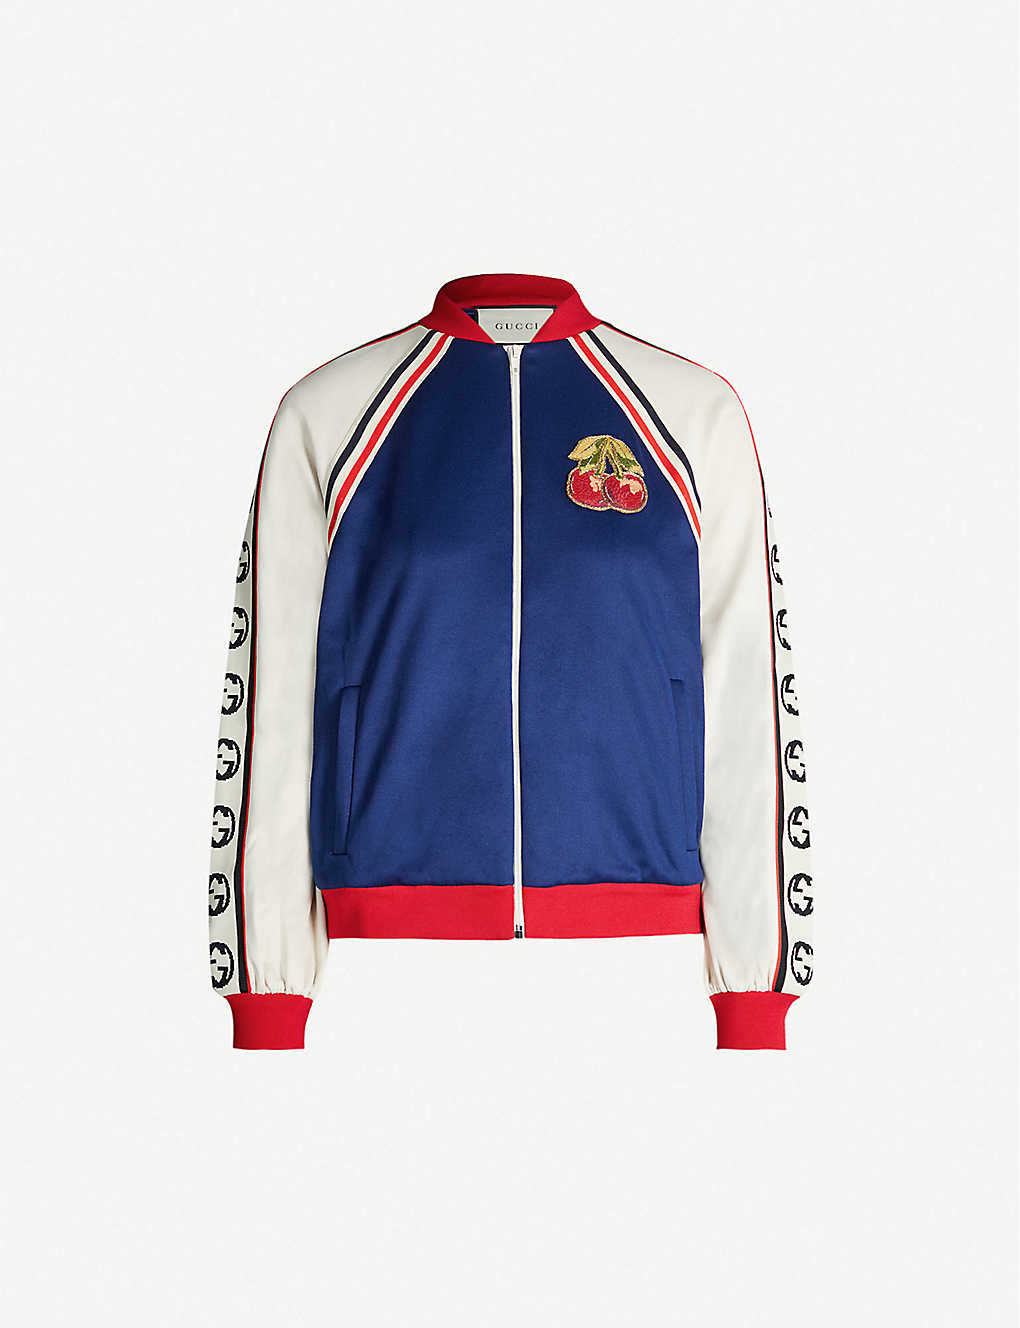 df6e0d3c0 GUCCI - Cherry-patch jersey jacket | Selfridges.com